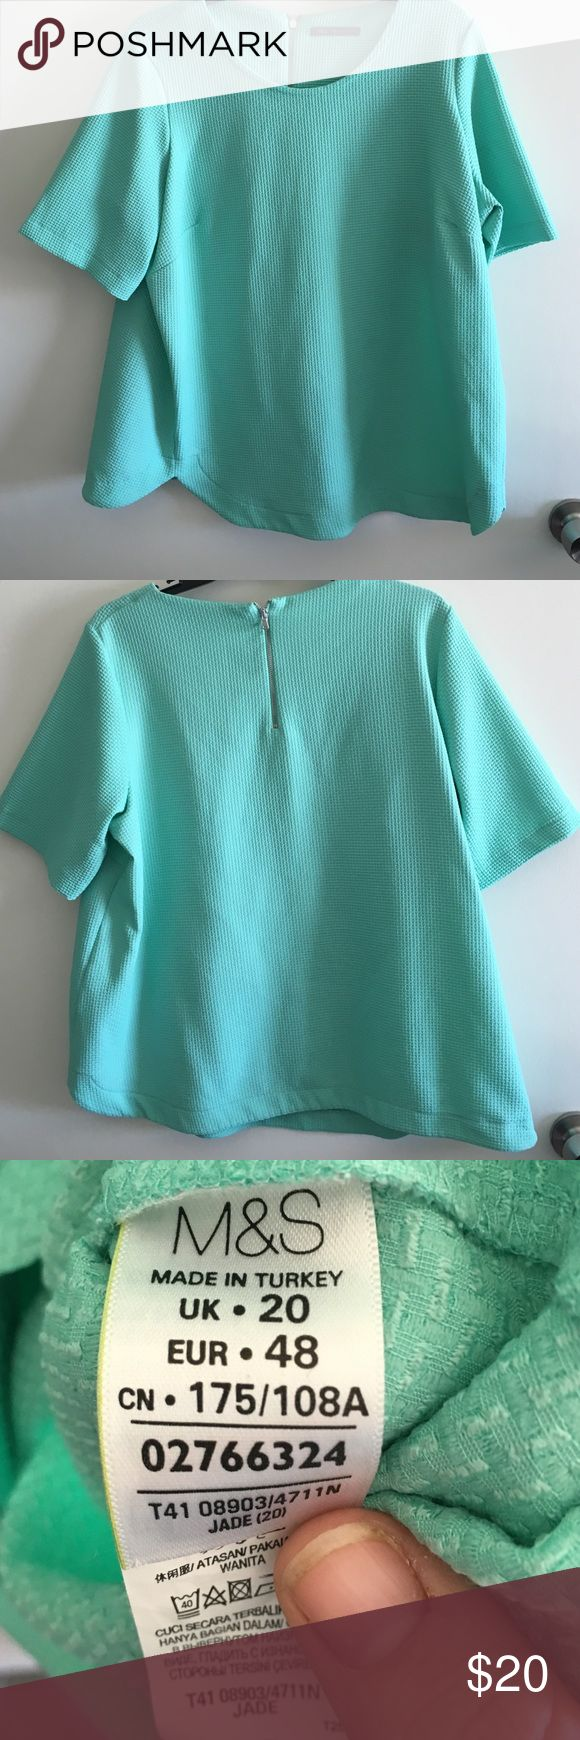 Marks & Spencer M&S Collection top Marks & Spencer M&S Collection jade top.  Purchased in Paris in February.   UK size 20, I would say is comparable to a US XL/xxl.  Has a very tiny smudge on the front. Marks & Spencer Tops Blouses